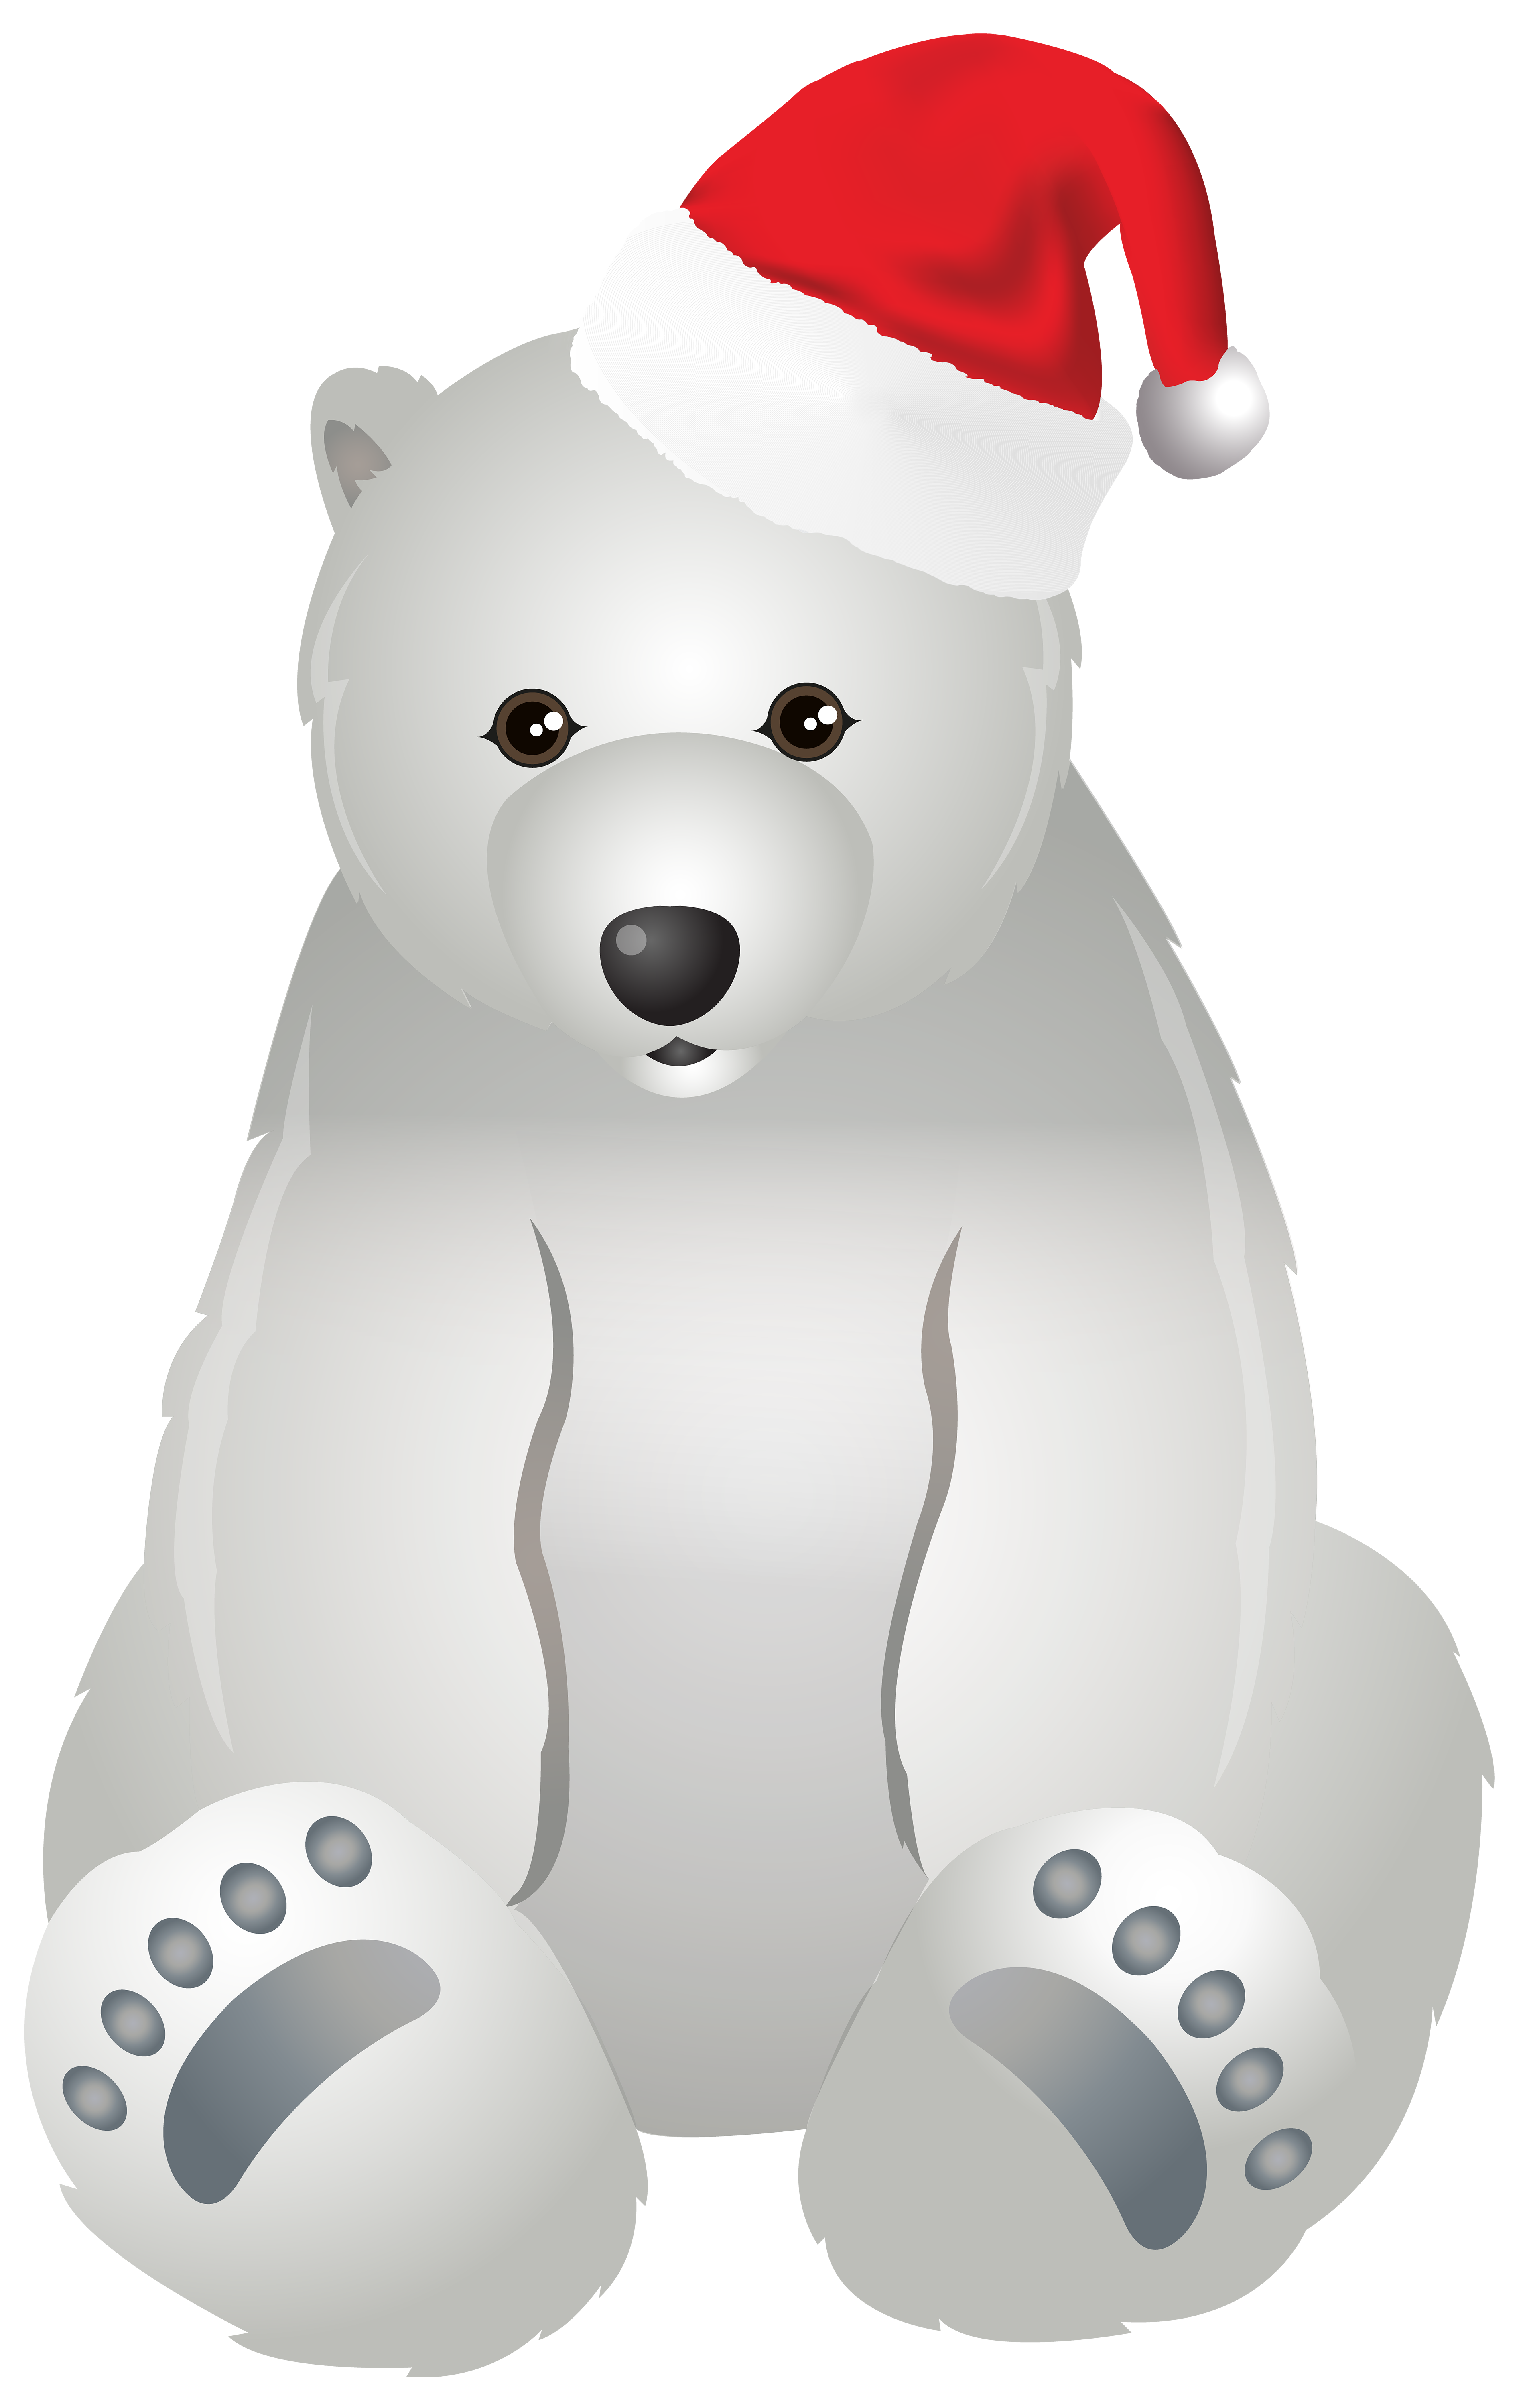 Christmas Polar Bear Transparent Clip Art Image Gallery Yopriceville High Quality Images And Transparent Png Free Clipa Polar Bear Art Bear Art Art Images